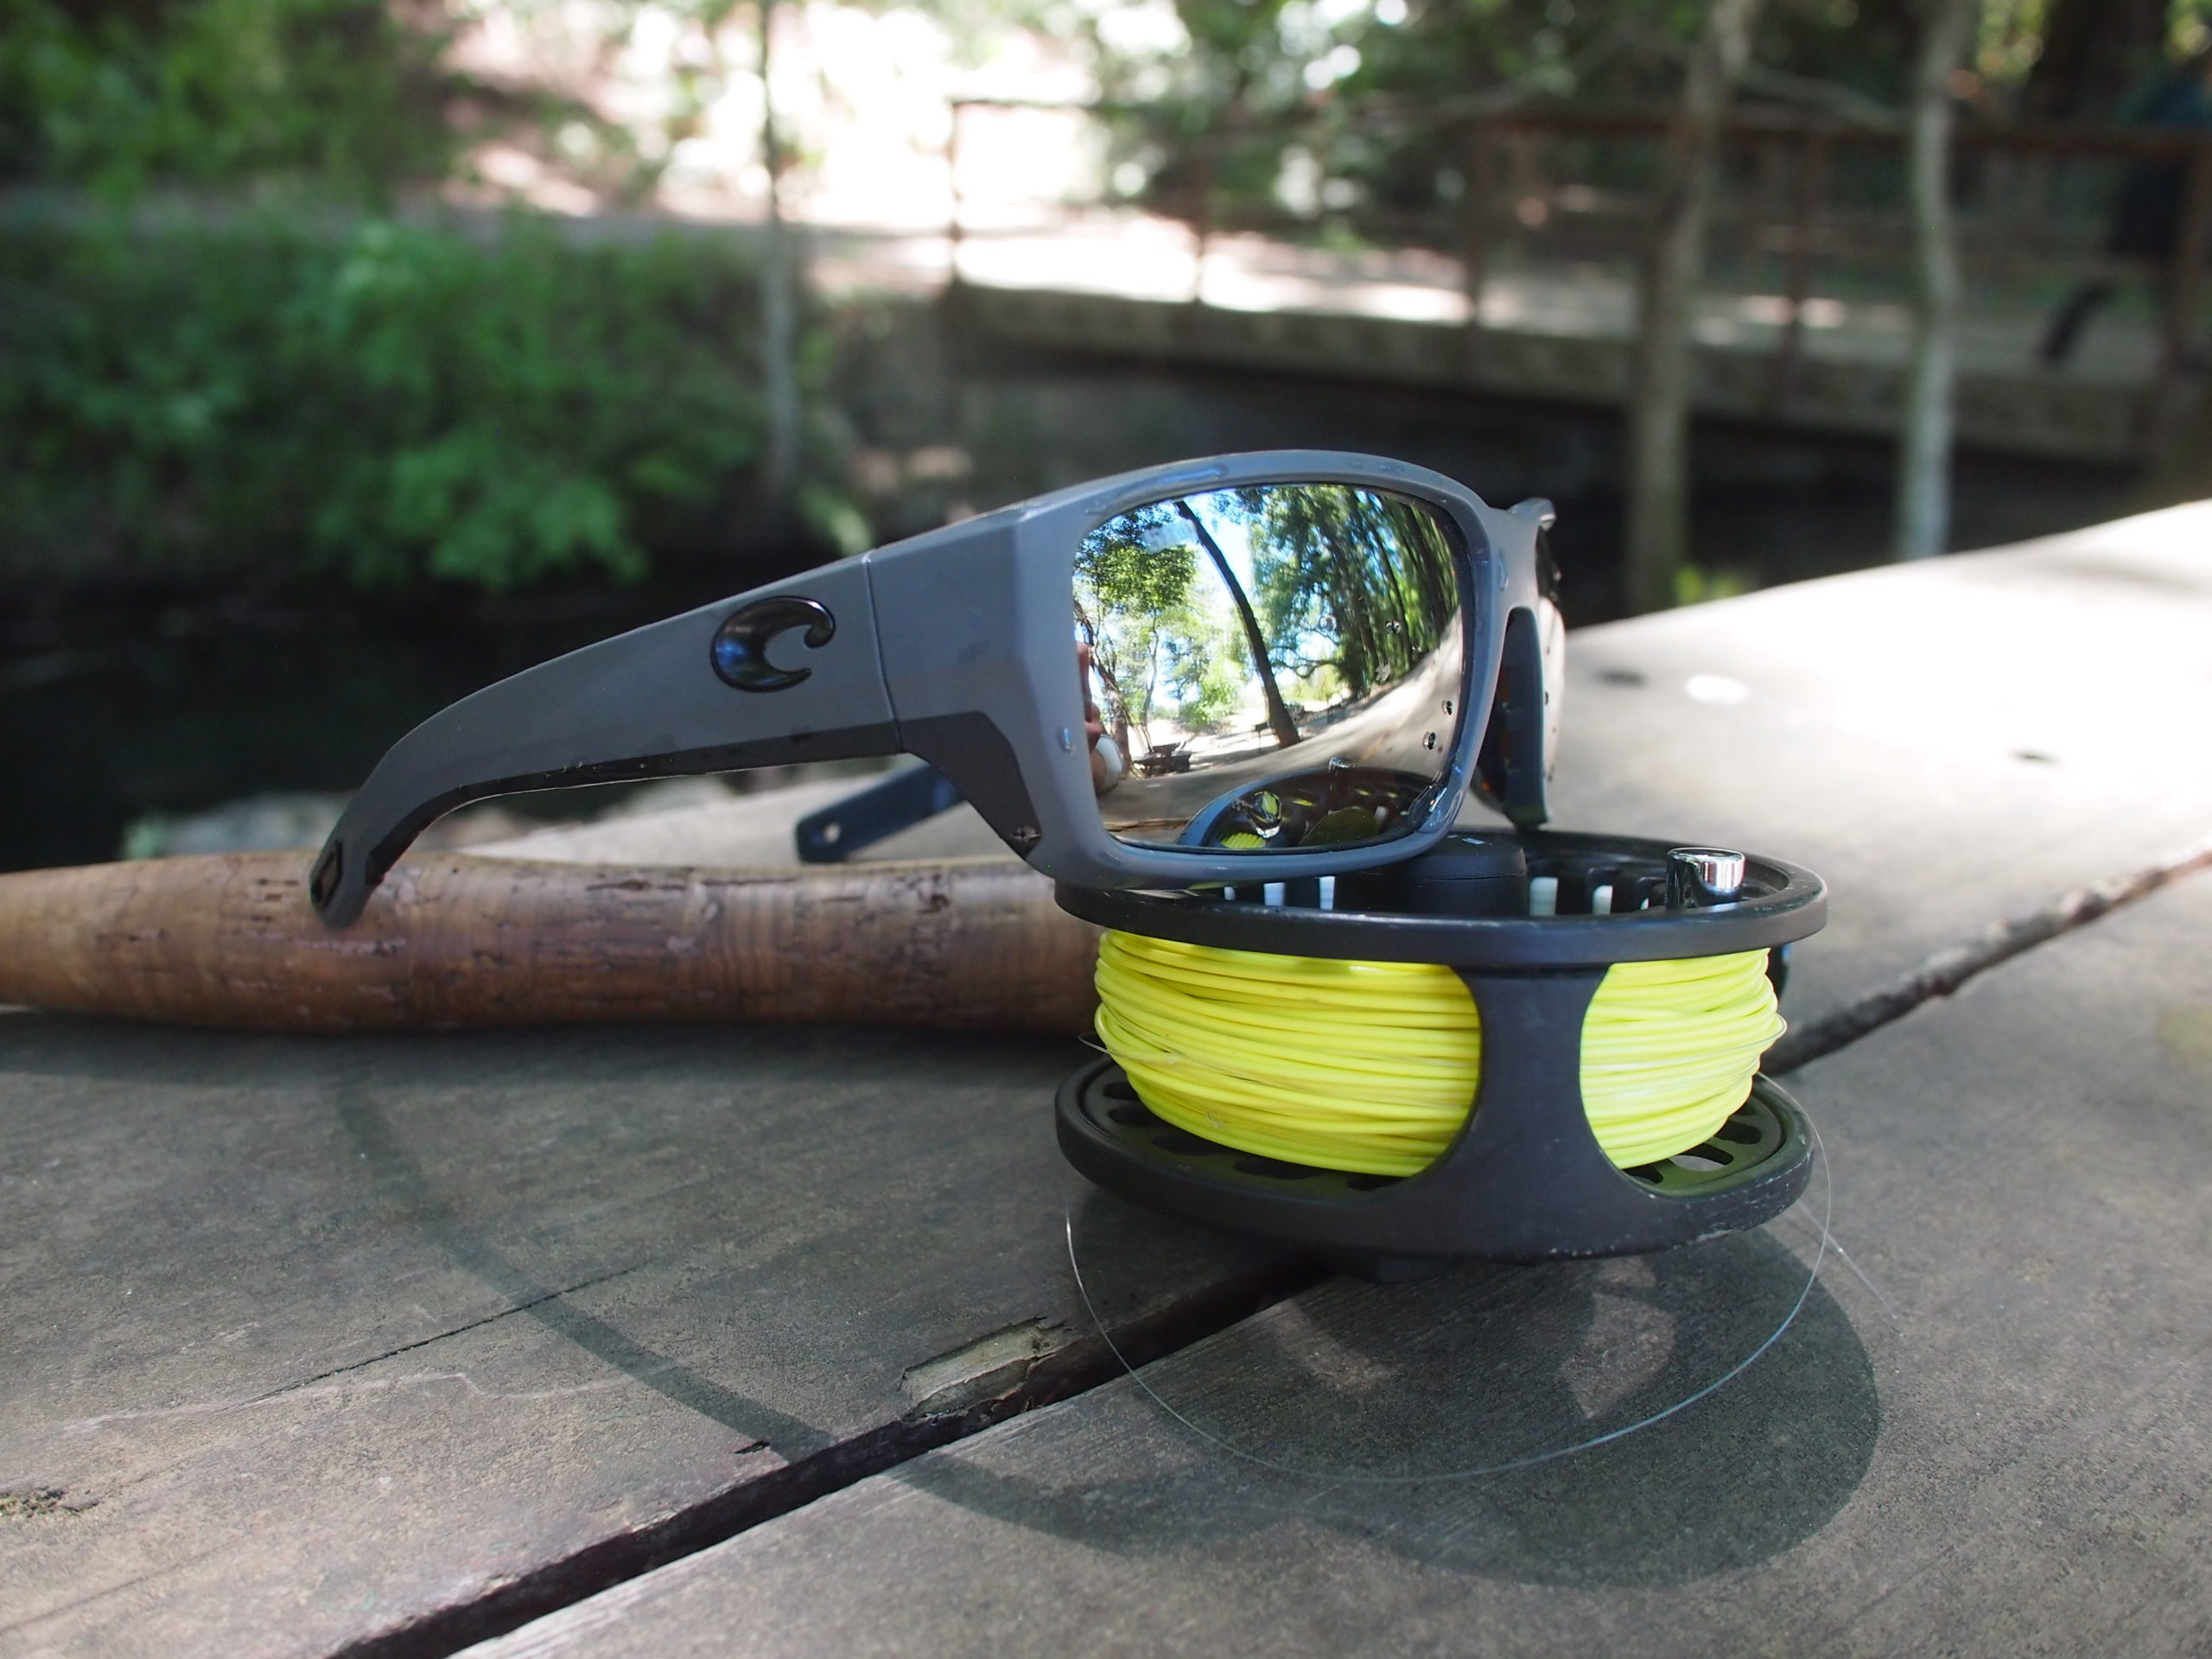 Review: Costa Sunglasses Are Primo For Long Days on the Water